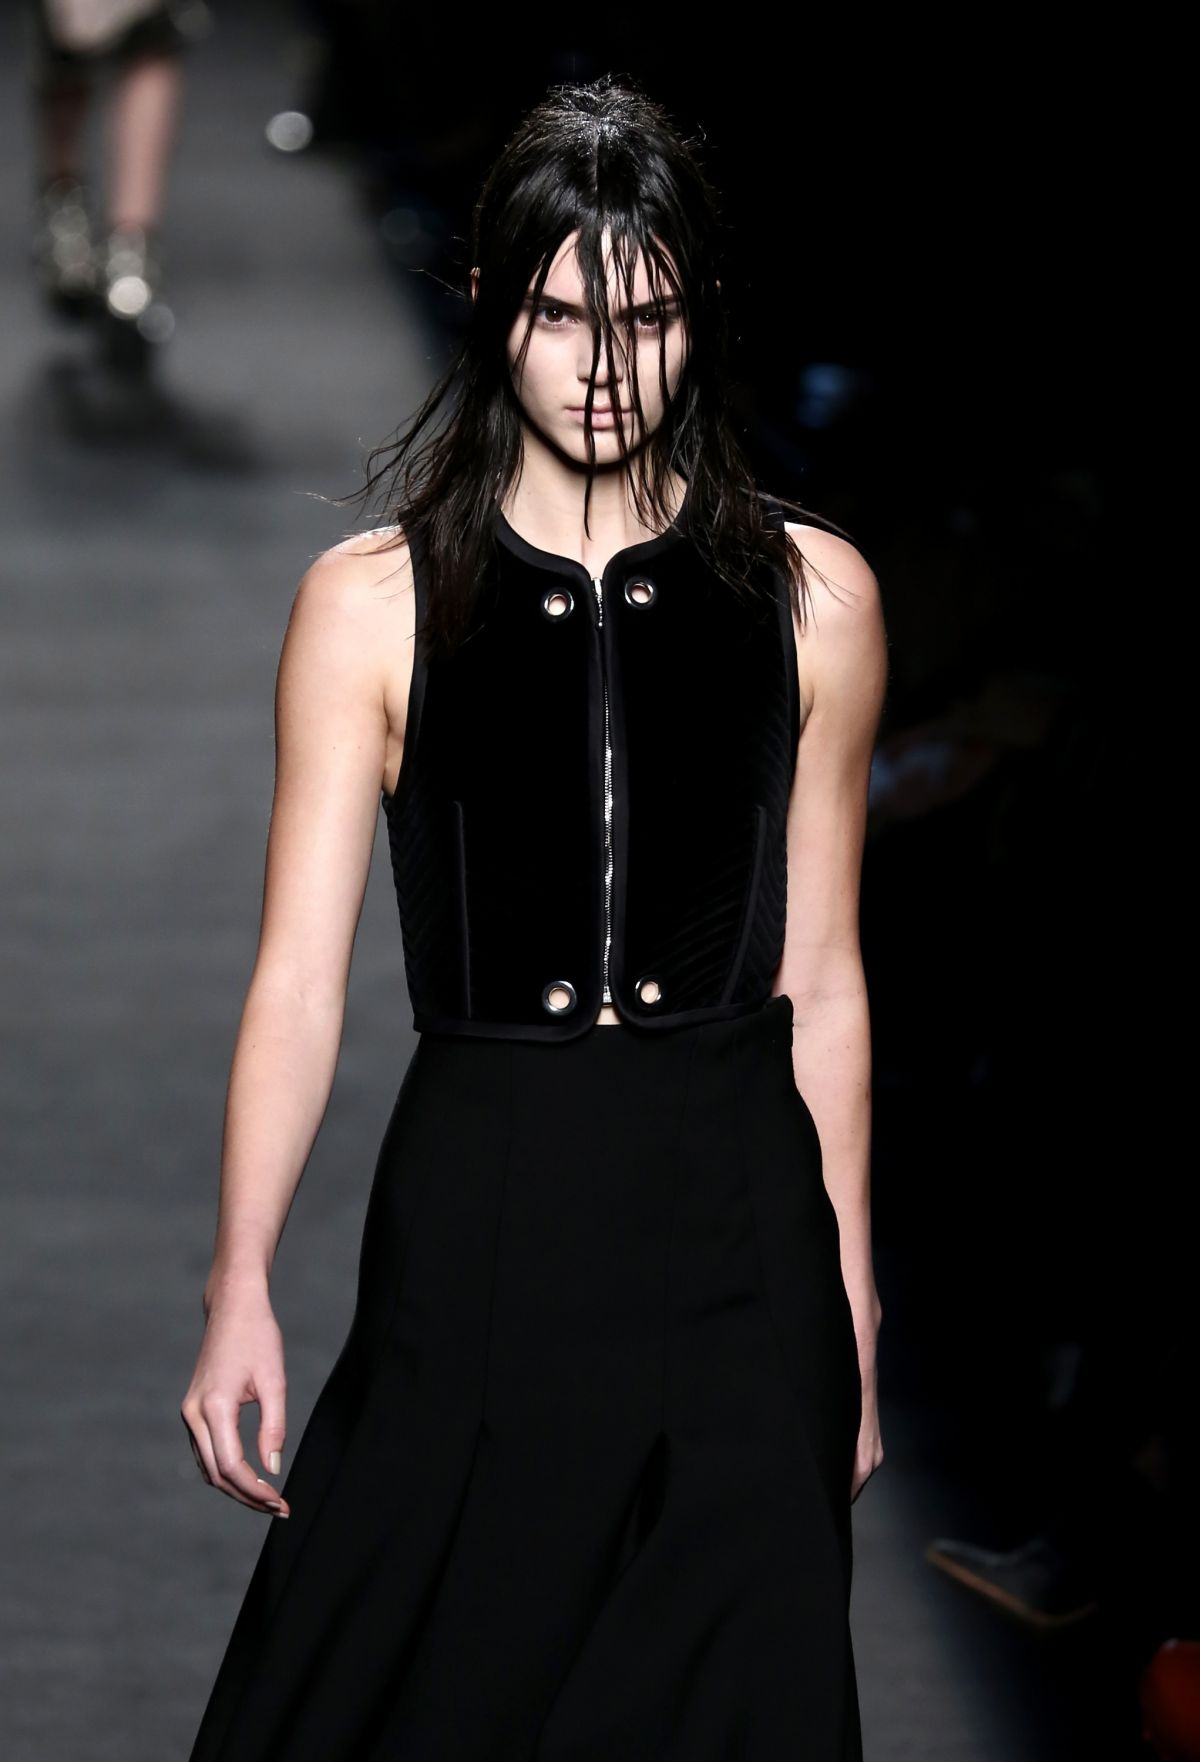 KENDALL JENNER on the Runway of Alexander Wang Fashion Show in New York